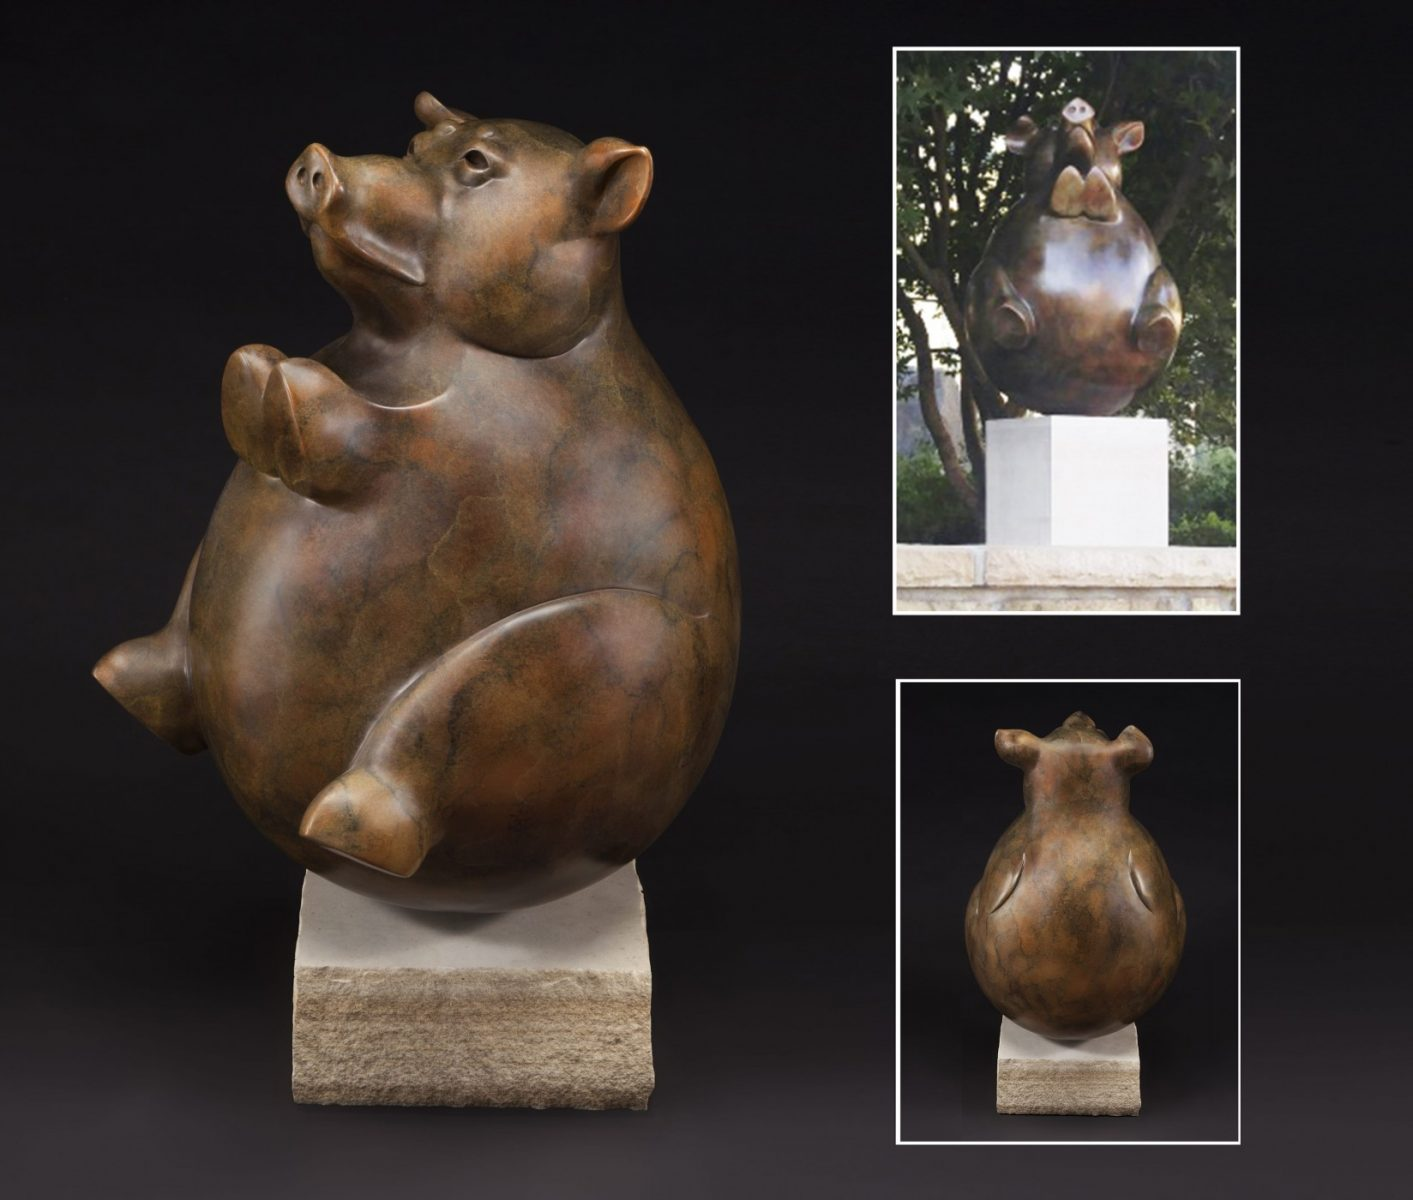 Whole Hog sculpture by Tim Cherry